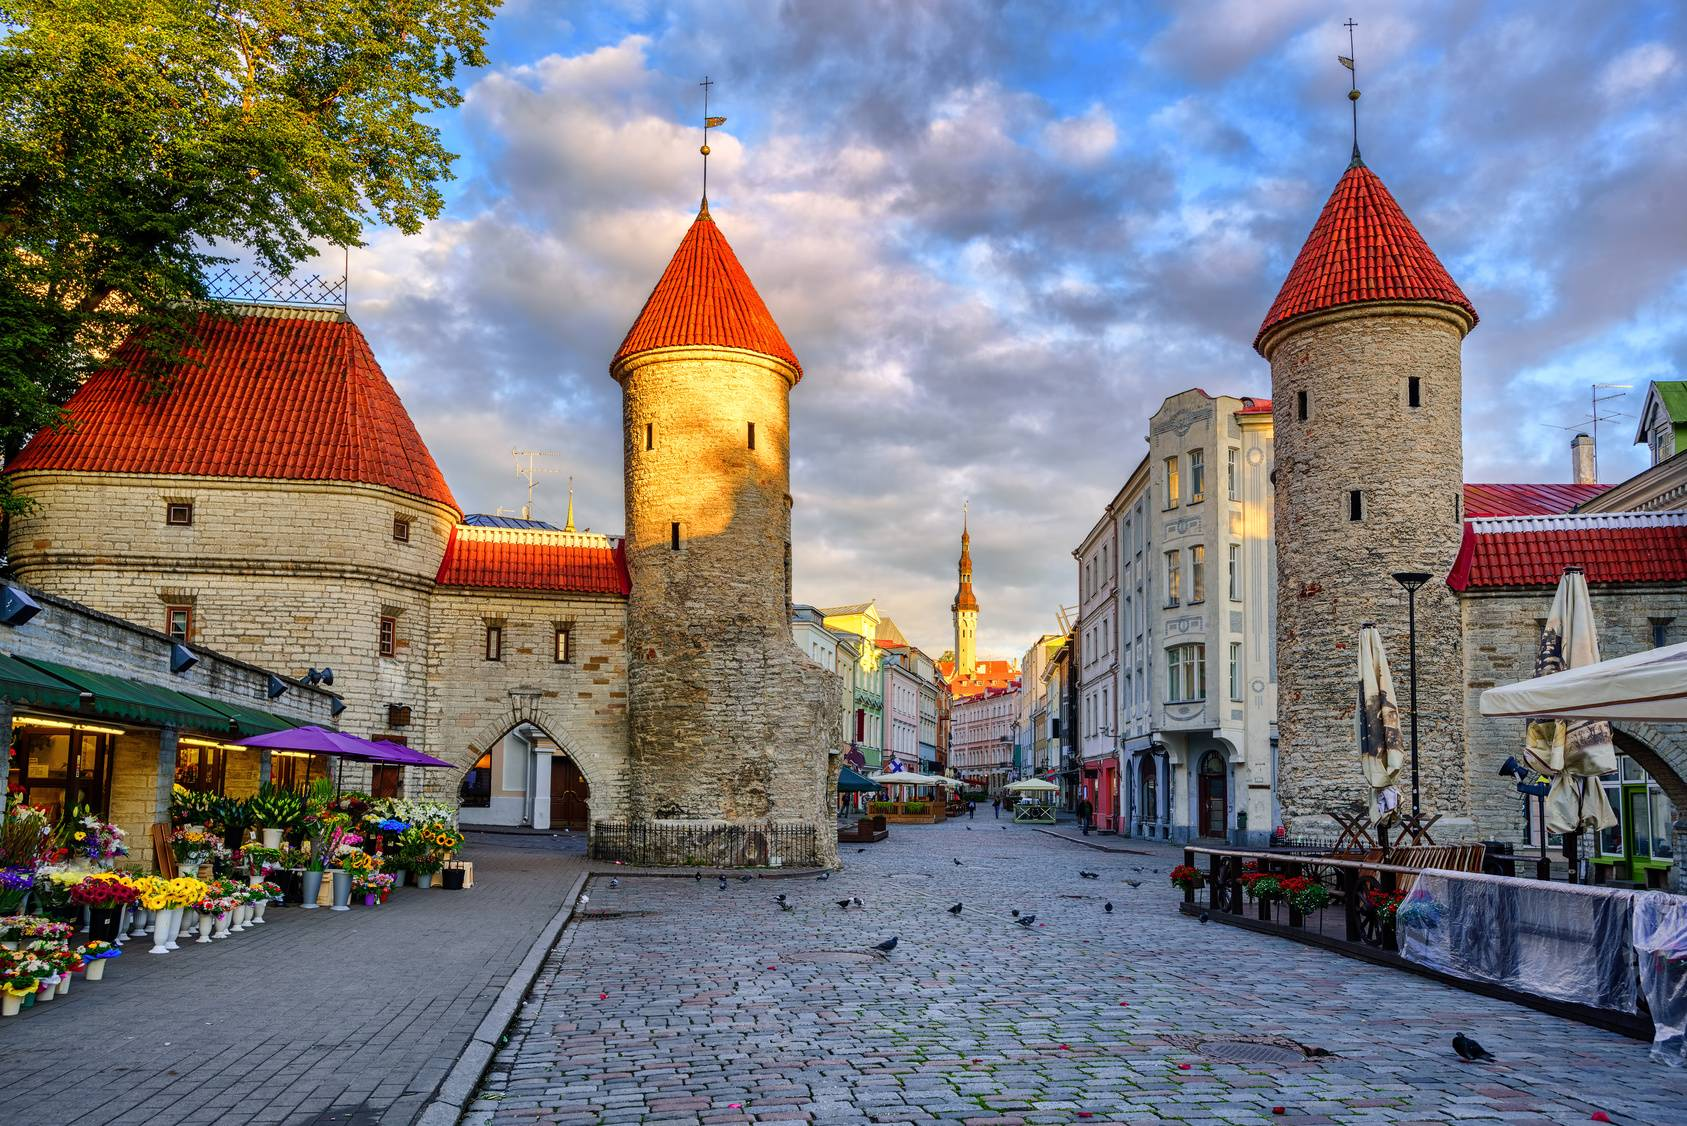 Viru Gate in the Old Town of Tallinn, Estonia